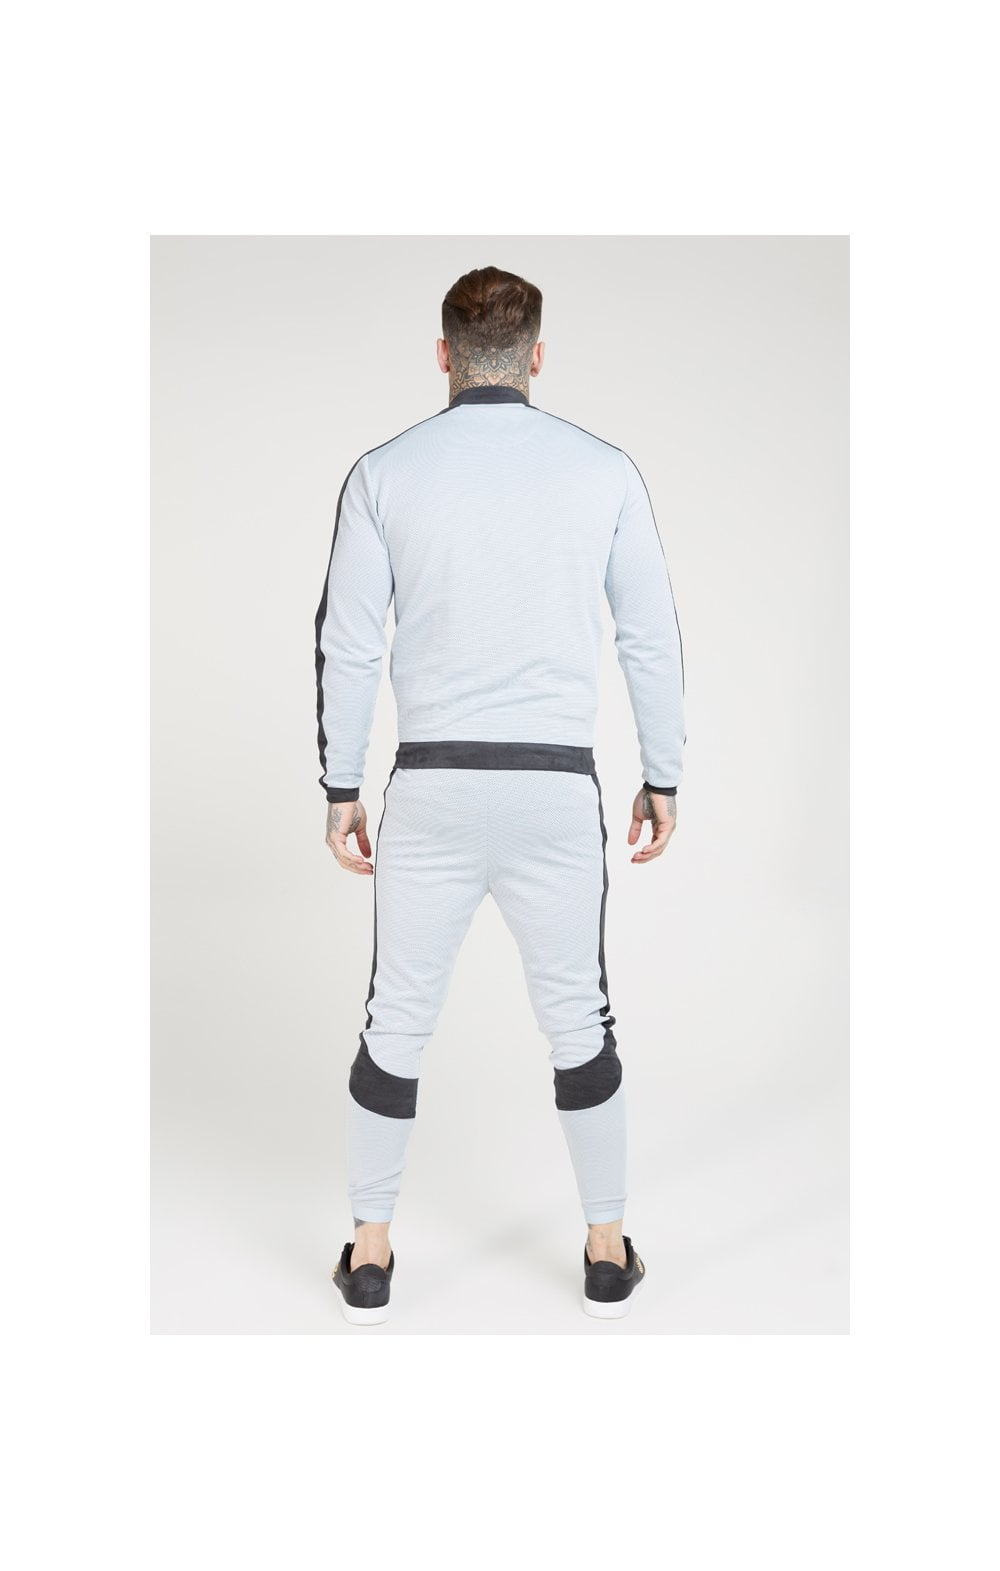 Load image into Gallery viewer, SikSilk Eyelet Poly Tape Bomber Jacket – Ice Grey & Charcoal (4)